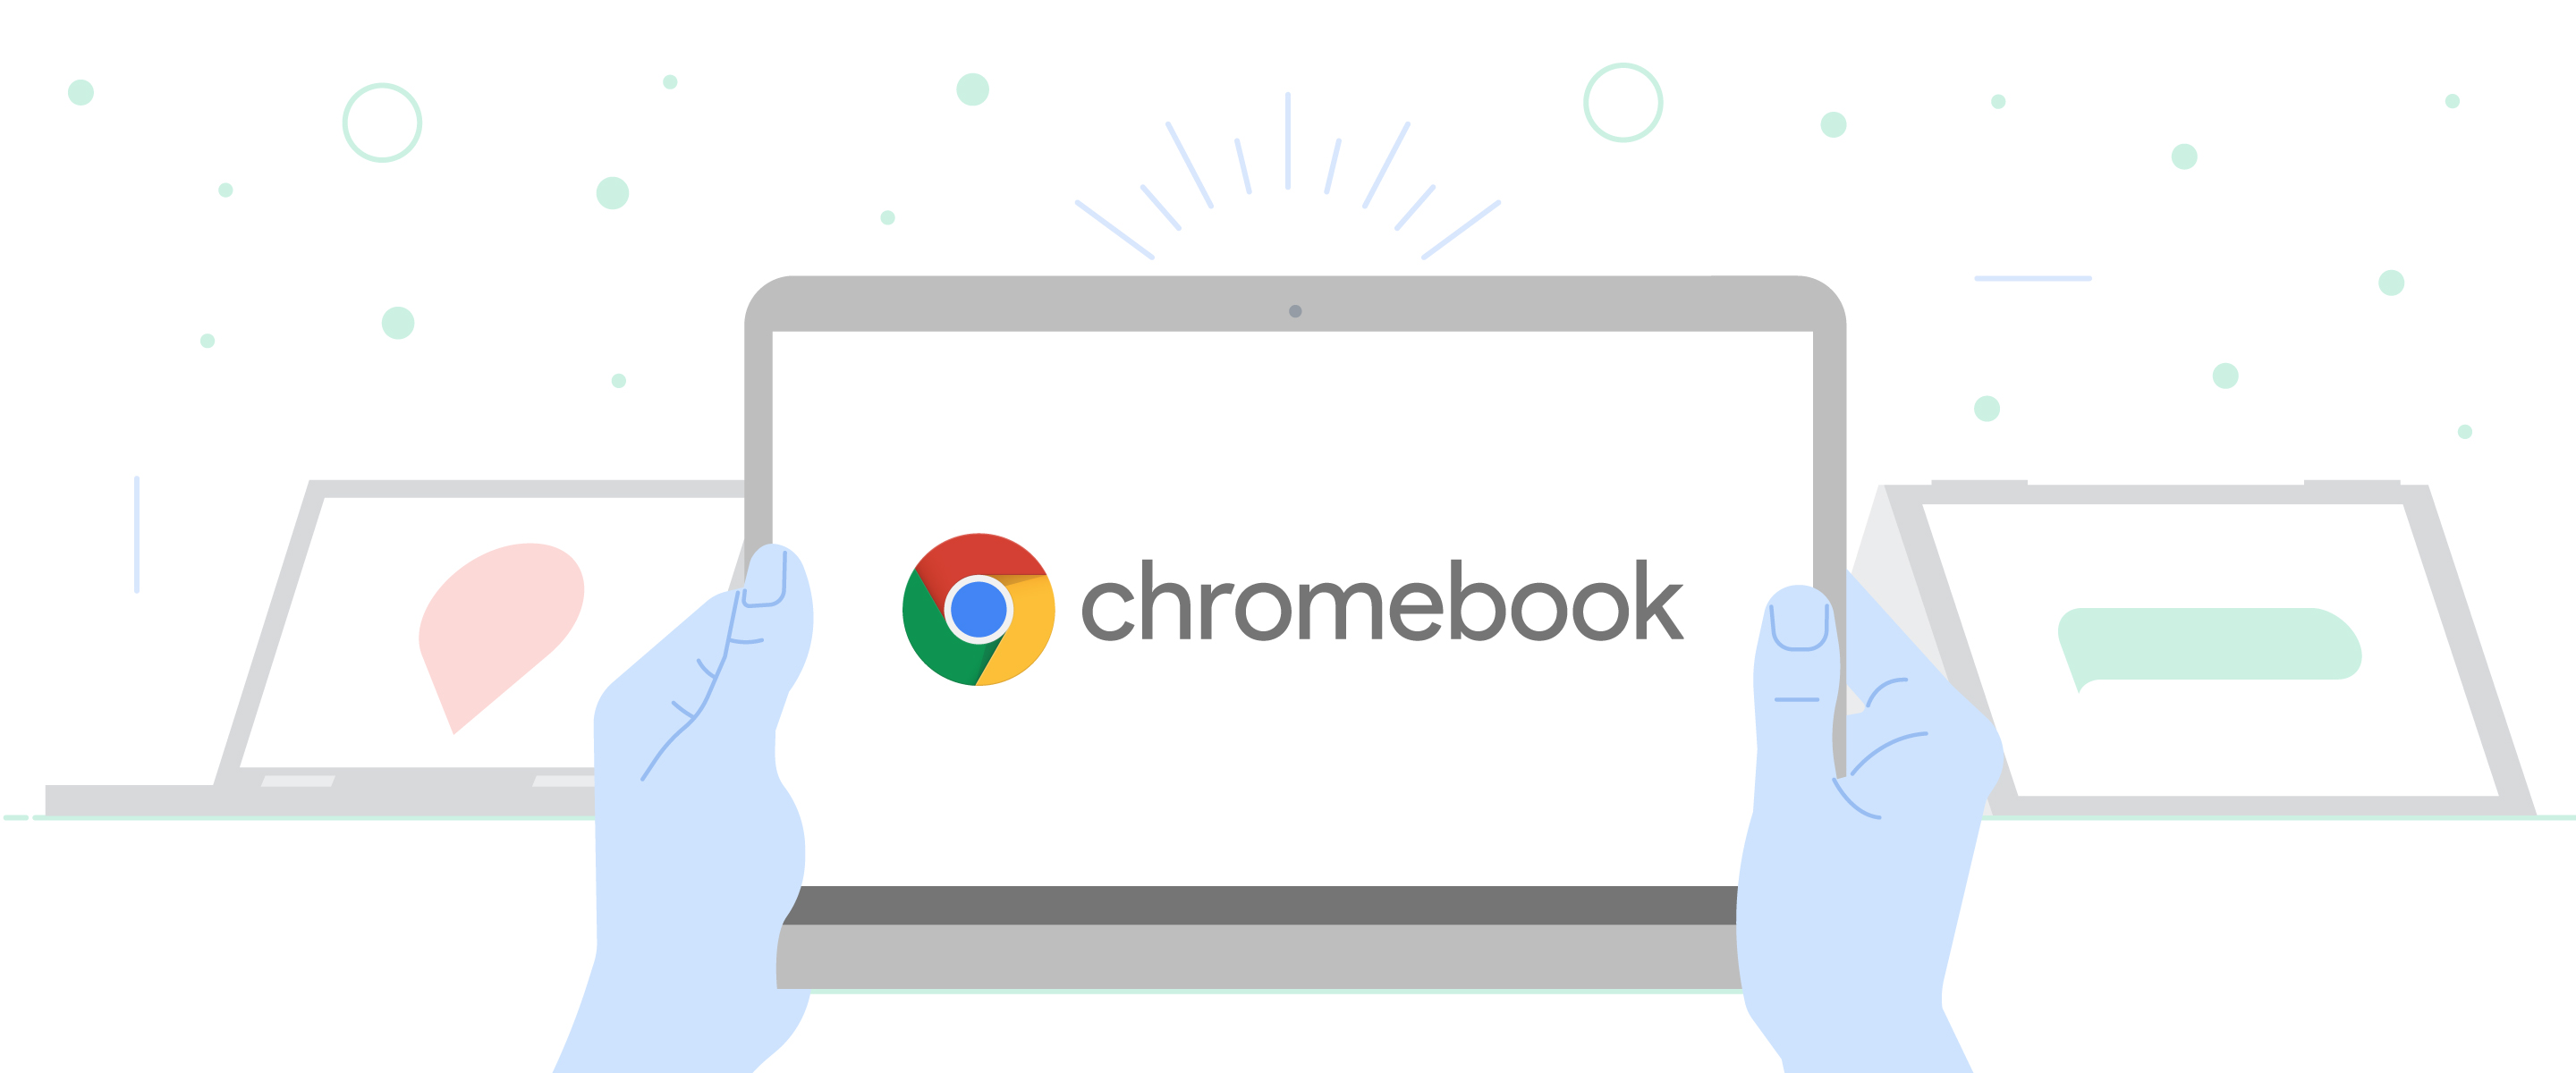 Chromebook Tablet Mode Becomes Simpler To Navigate